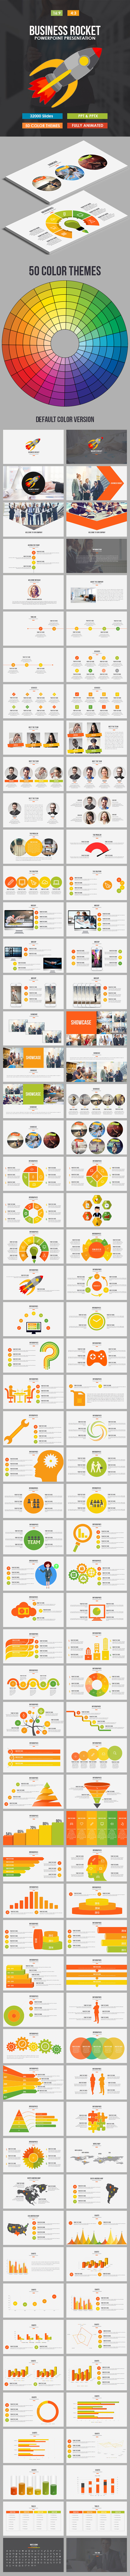 Business Rocket Powerpoint Presentation - Business PowerPoint Templates